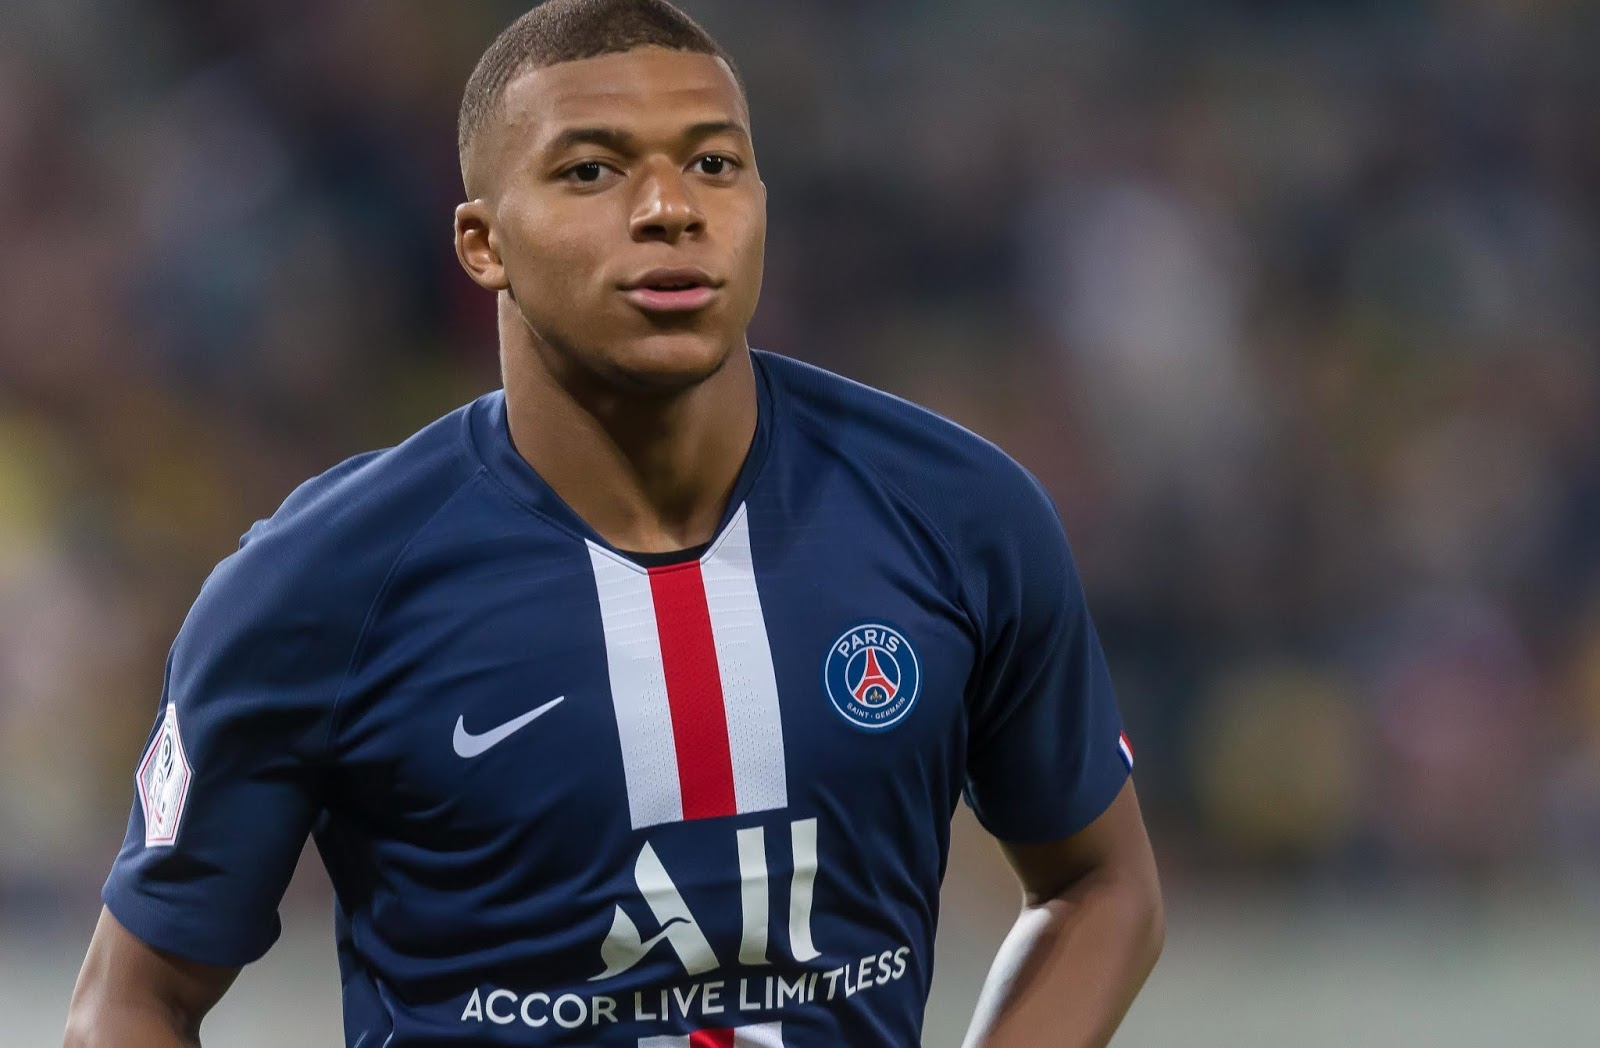 Photo of Mourinho Puji Mbappe, Mirip Ronaldo Luiz Nazario